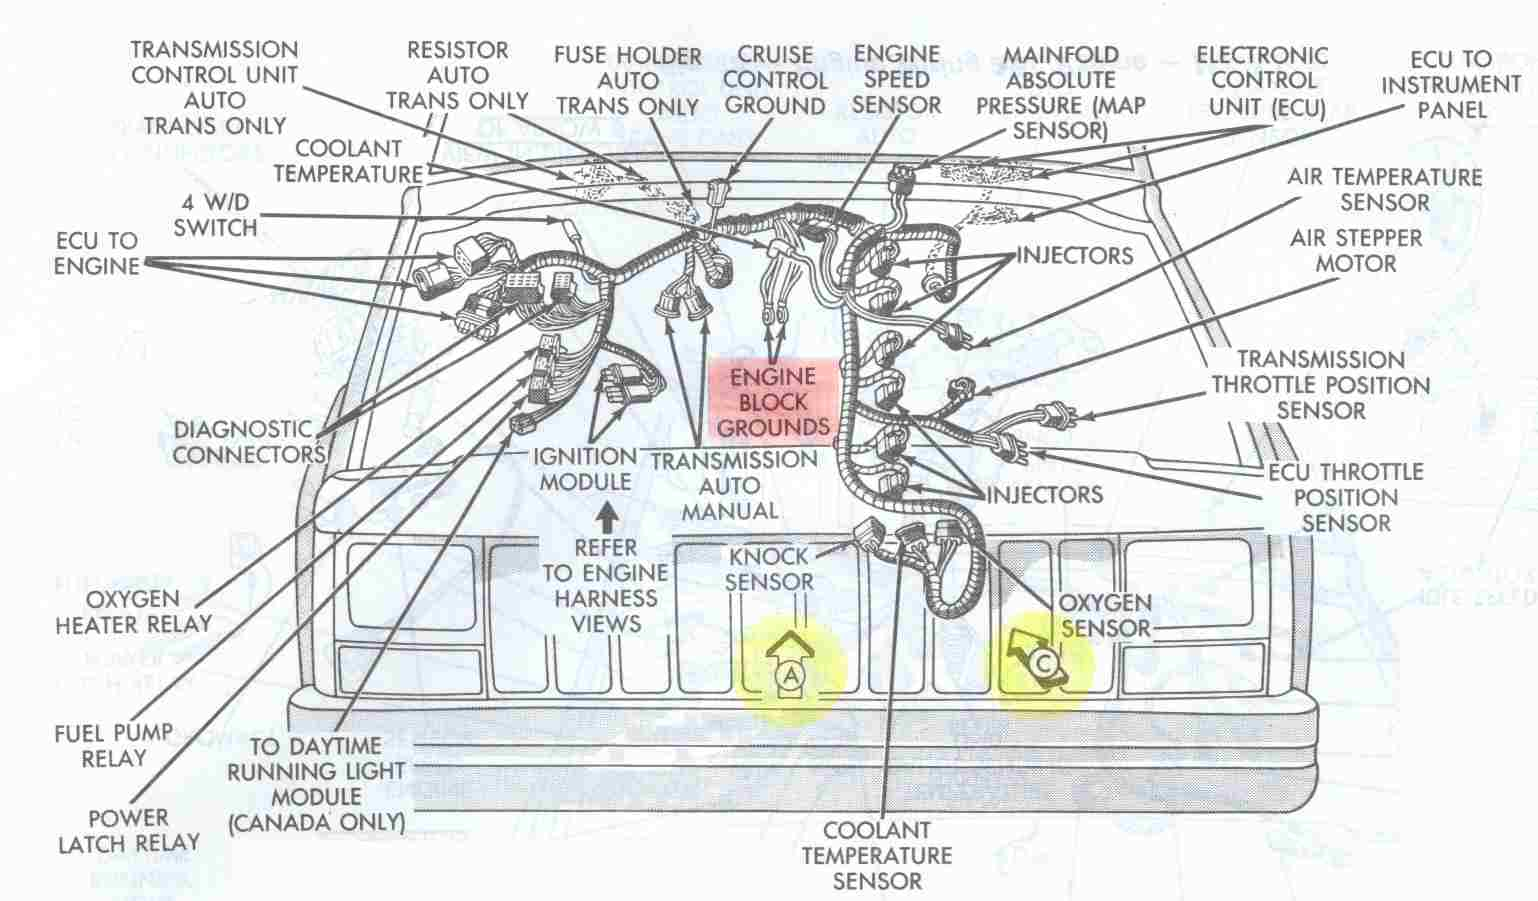 Electrical_Engine_Ground_Points_Overview jeep cherokee electrical diagnosing erratic behavior of engine 1991 jeep cherokee wiring diagram at honlapkeszites.co